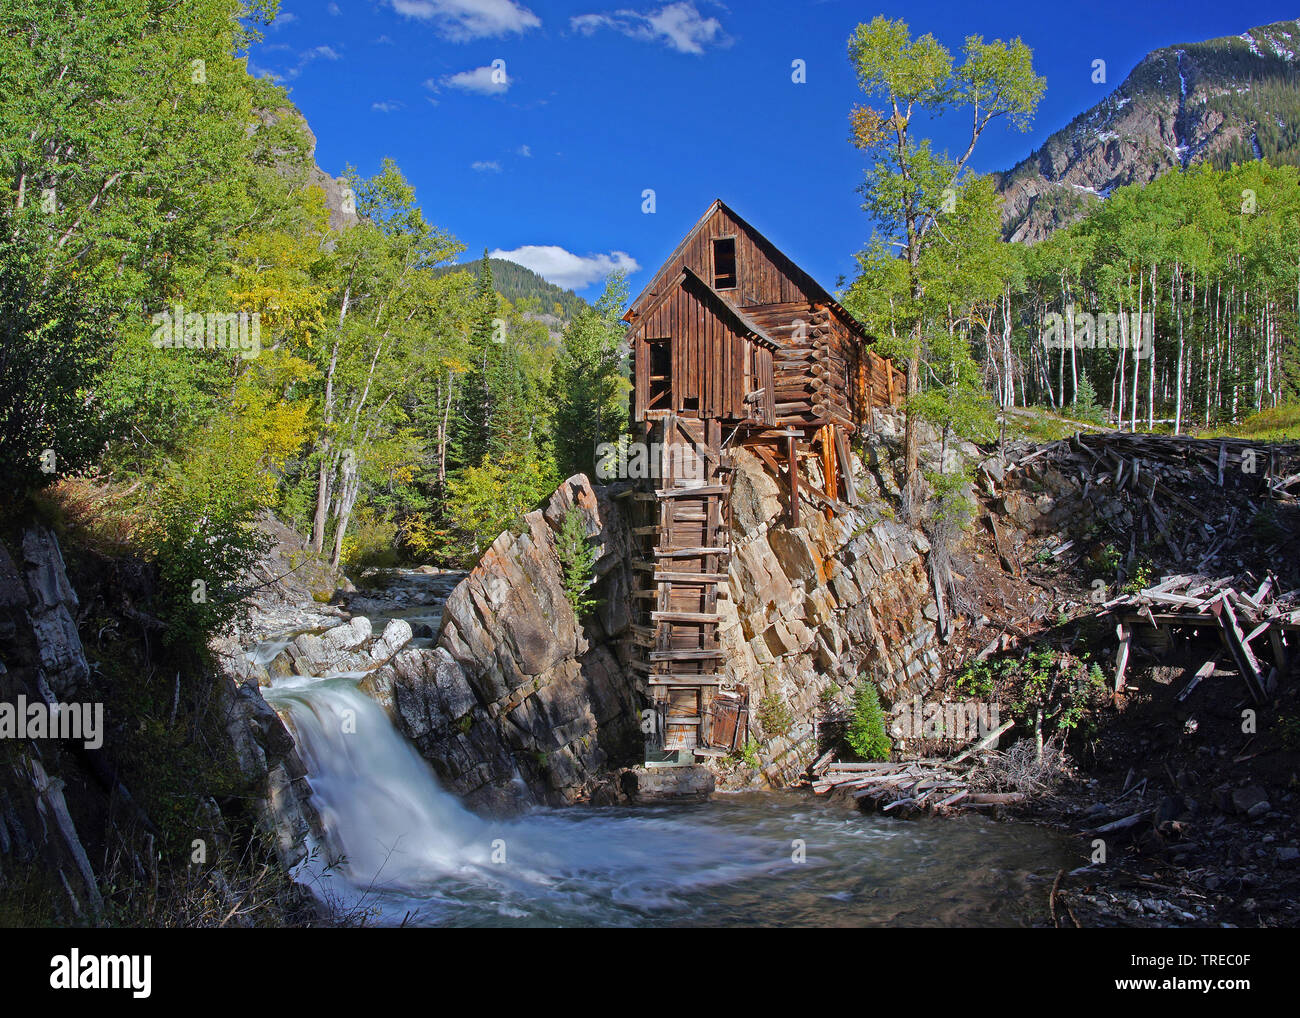 Crystall Mill, Old Mill, im Herbst am Crystal River, USA, Colorado, Crystal River | Crystall Mill, Old Mill at the Crystal River in autumn, USA, Color - Stock Image